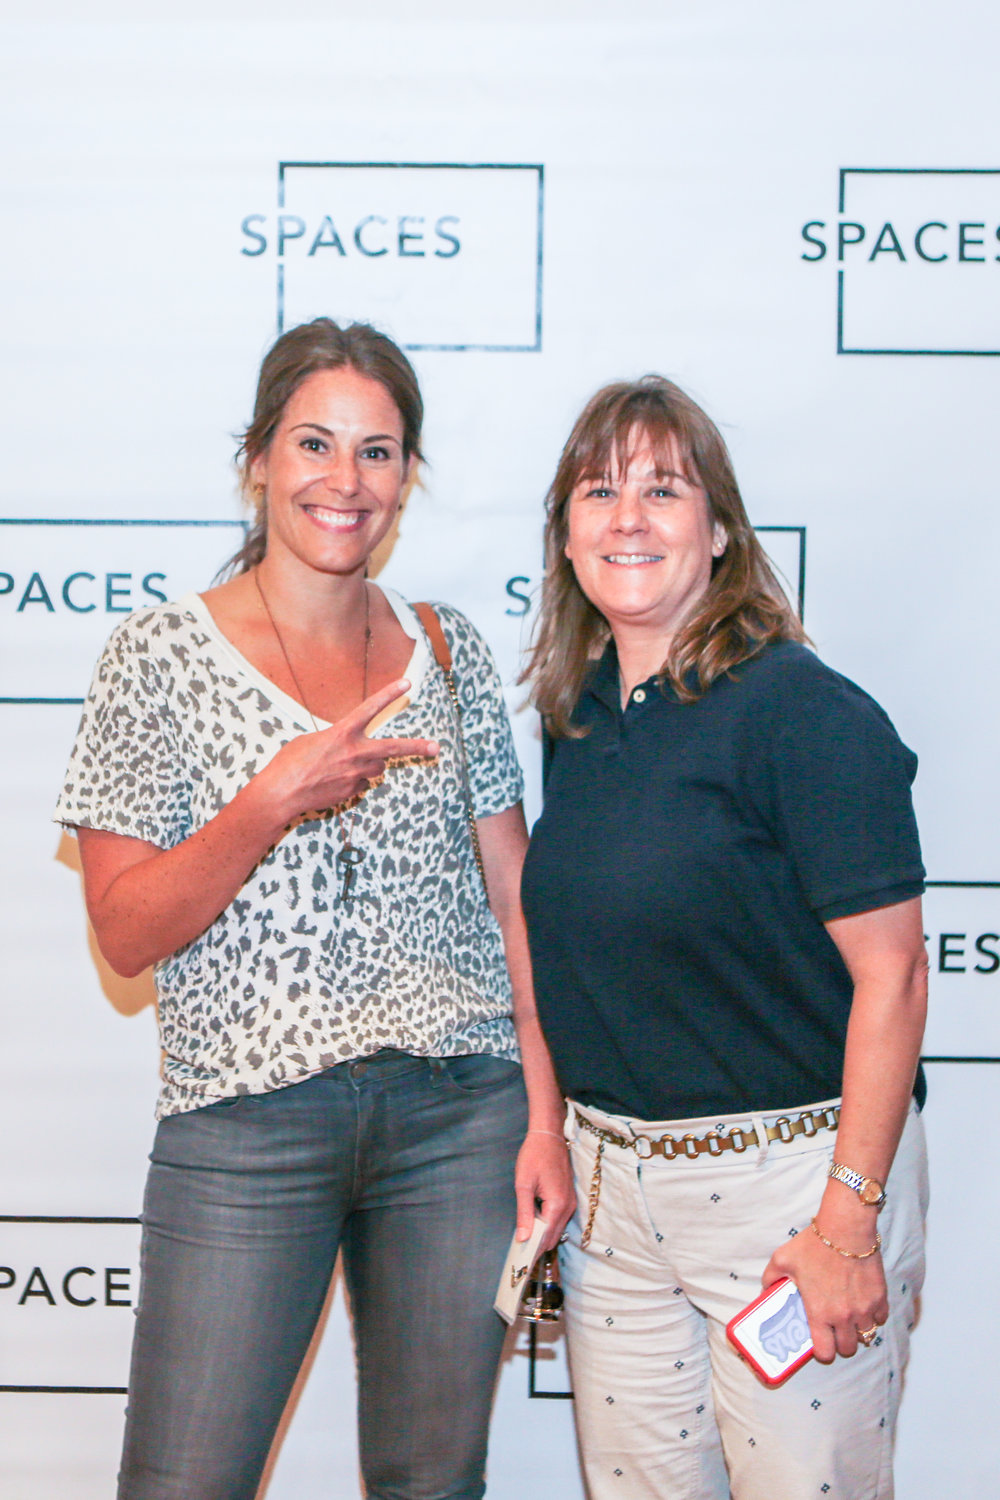 Spaces Event-1035.jpg